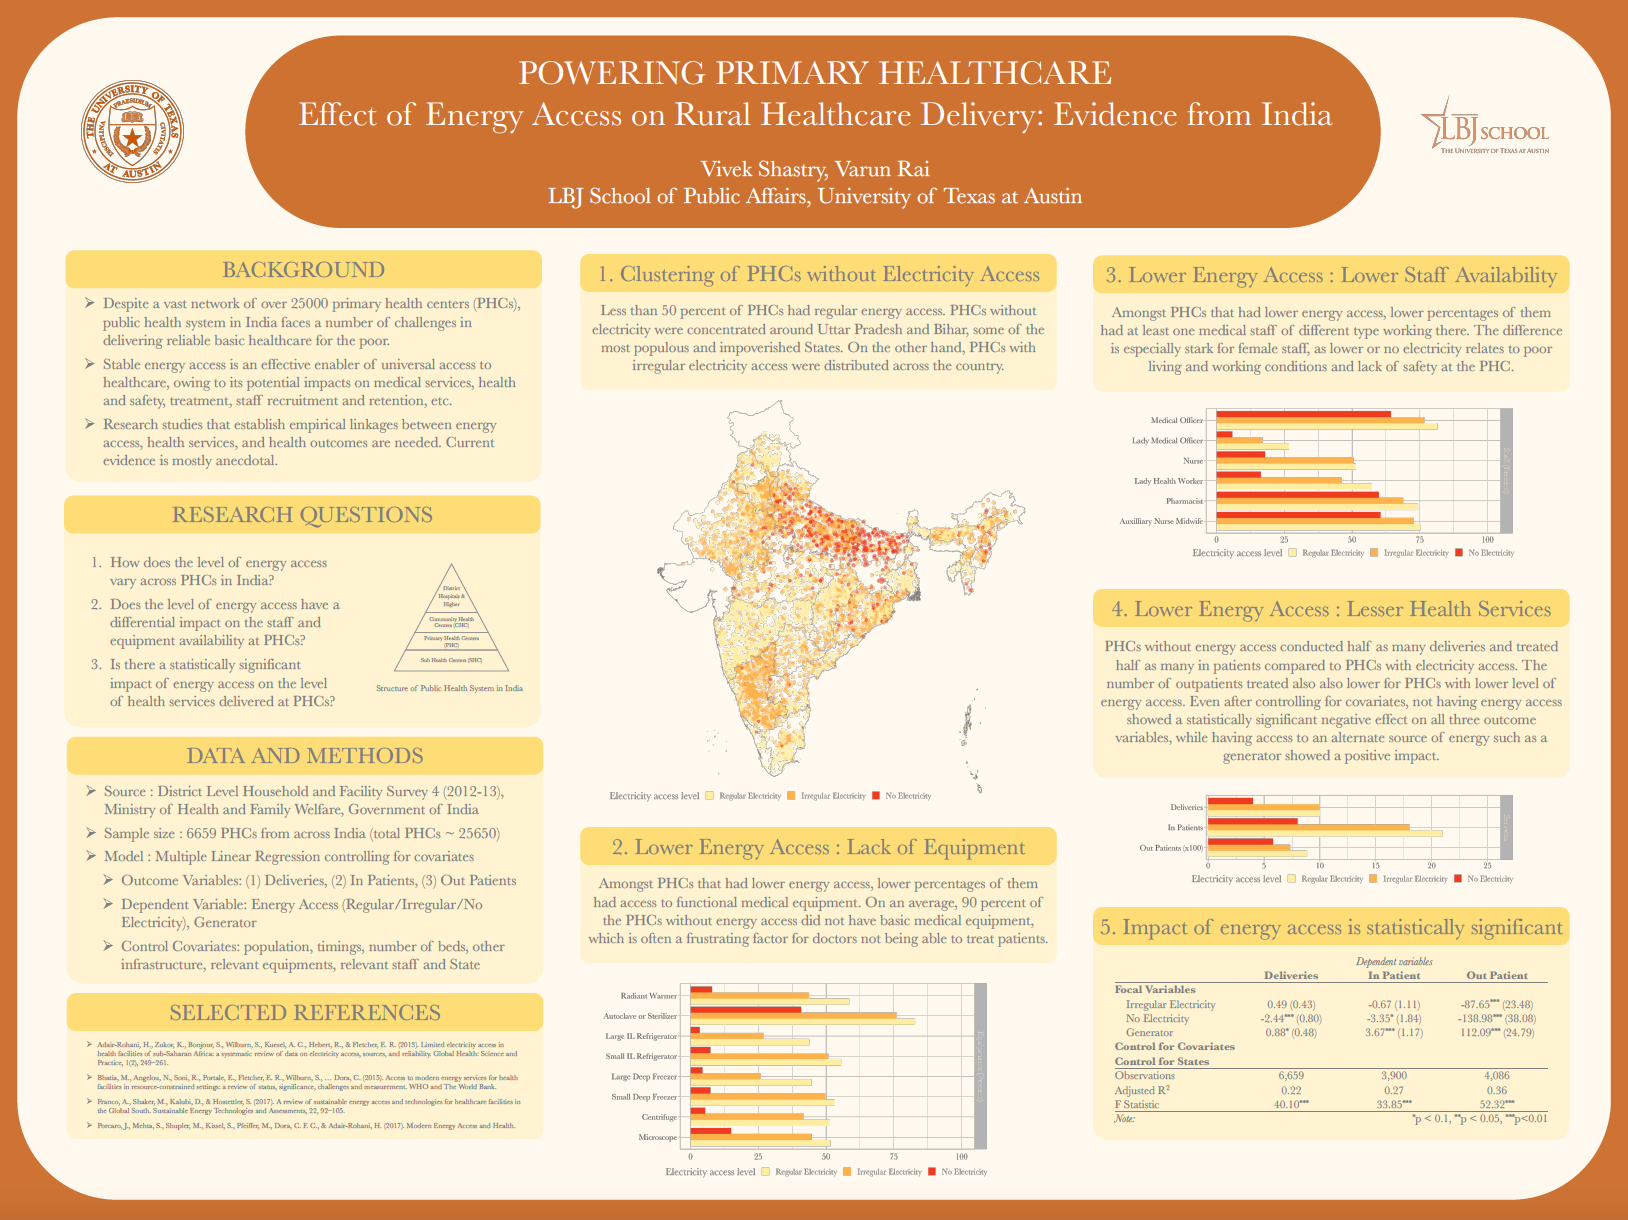 Innovation Bound 2019 research poster: Effect of Energy Access on Rural Healthcare Delivery: Evidence from India